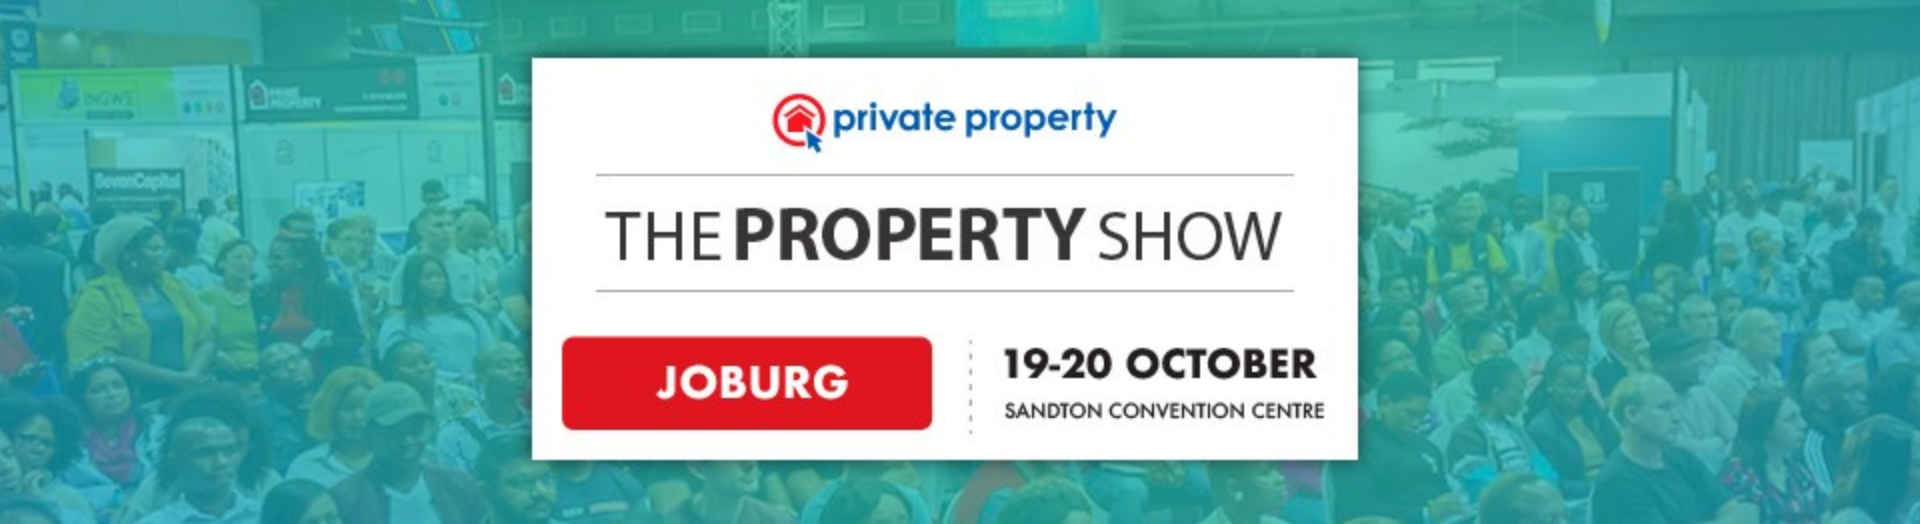 Private Property The Property Show